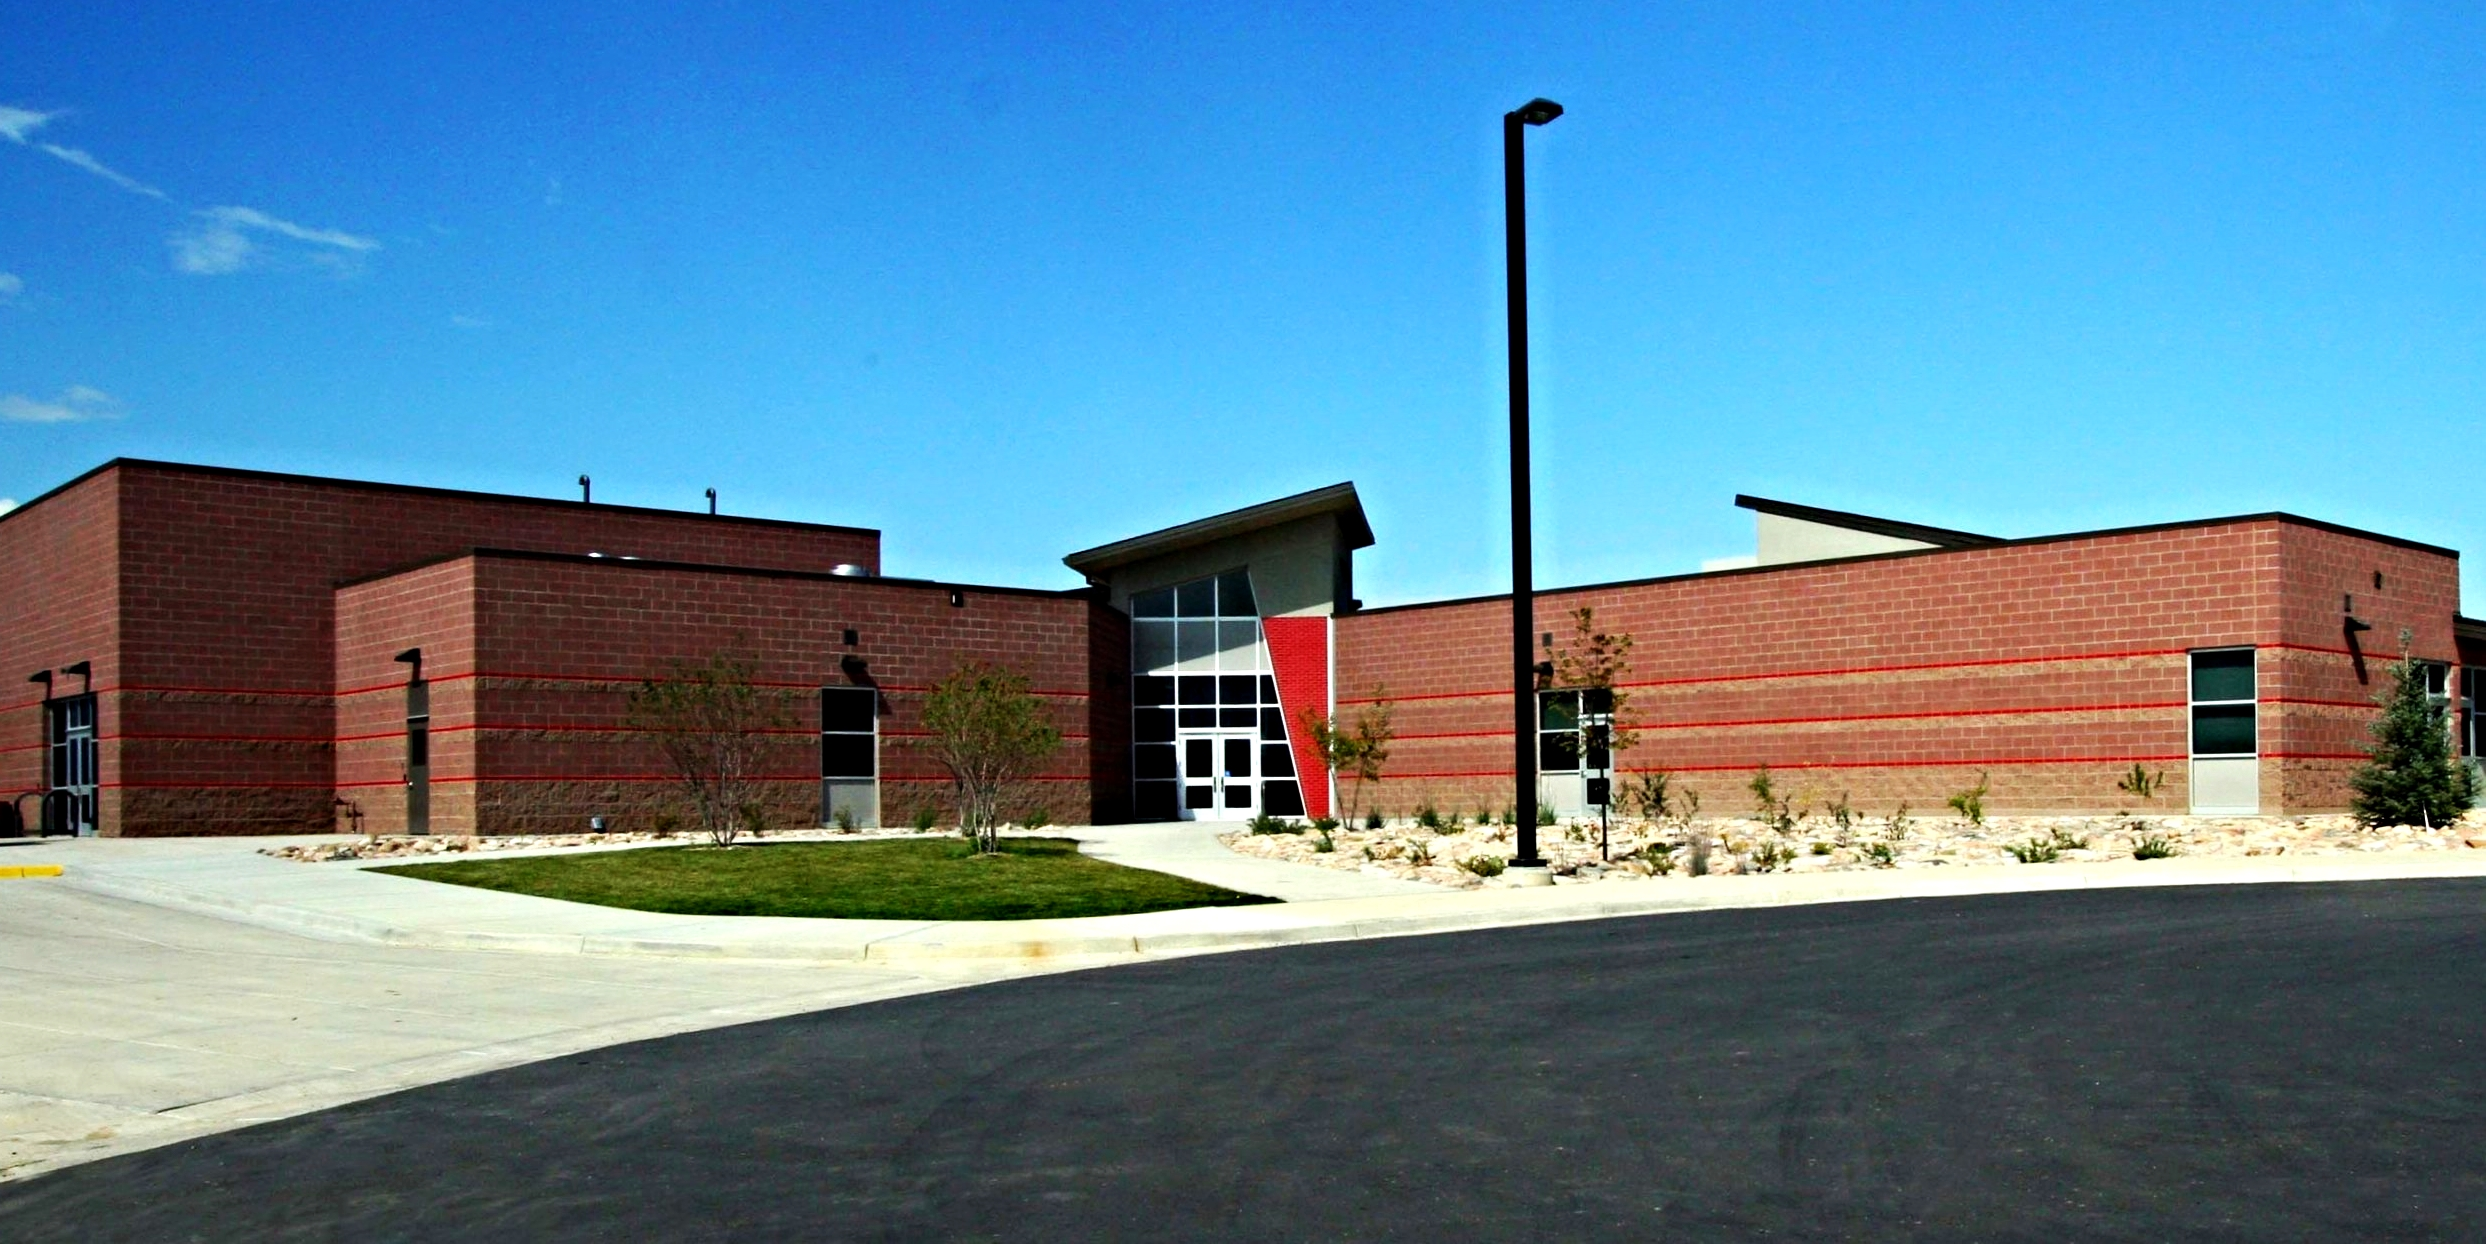 BLACK ROCK ELEMENTARY -  New 56,719 SF elementary school and 10.92 acre site developments including full utility, parking lot, site irrigation, landscaping and playground equipment.